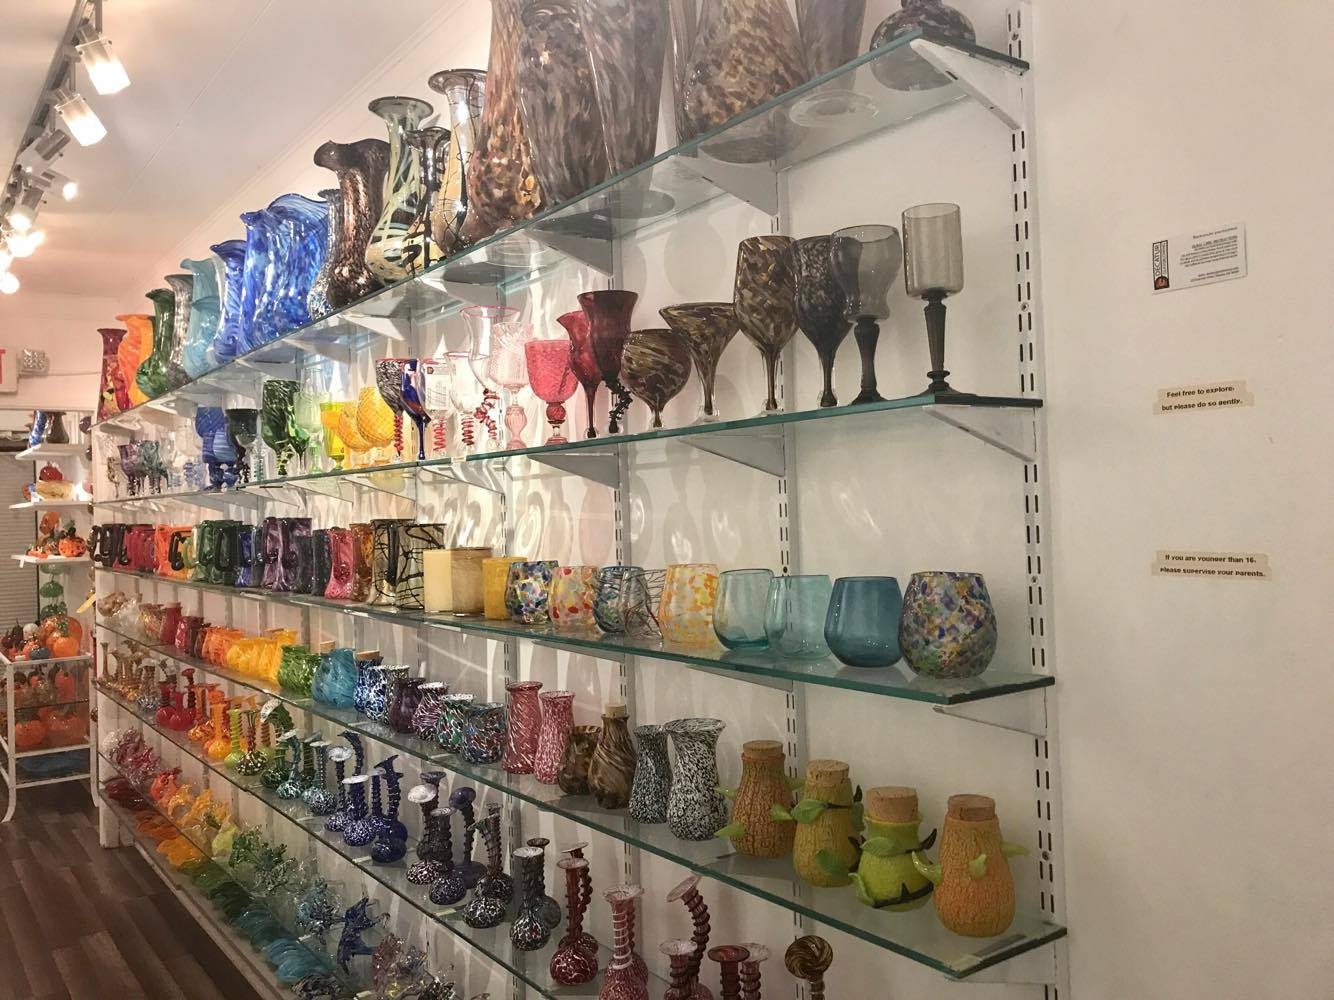 The Wall of Cups, Mugs, and Vases - Decatur Glassblowing